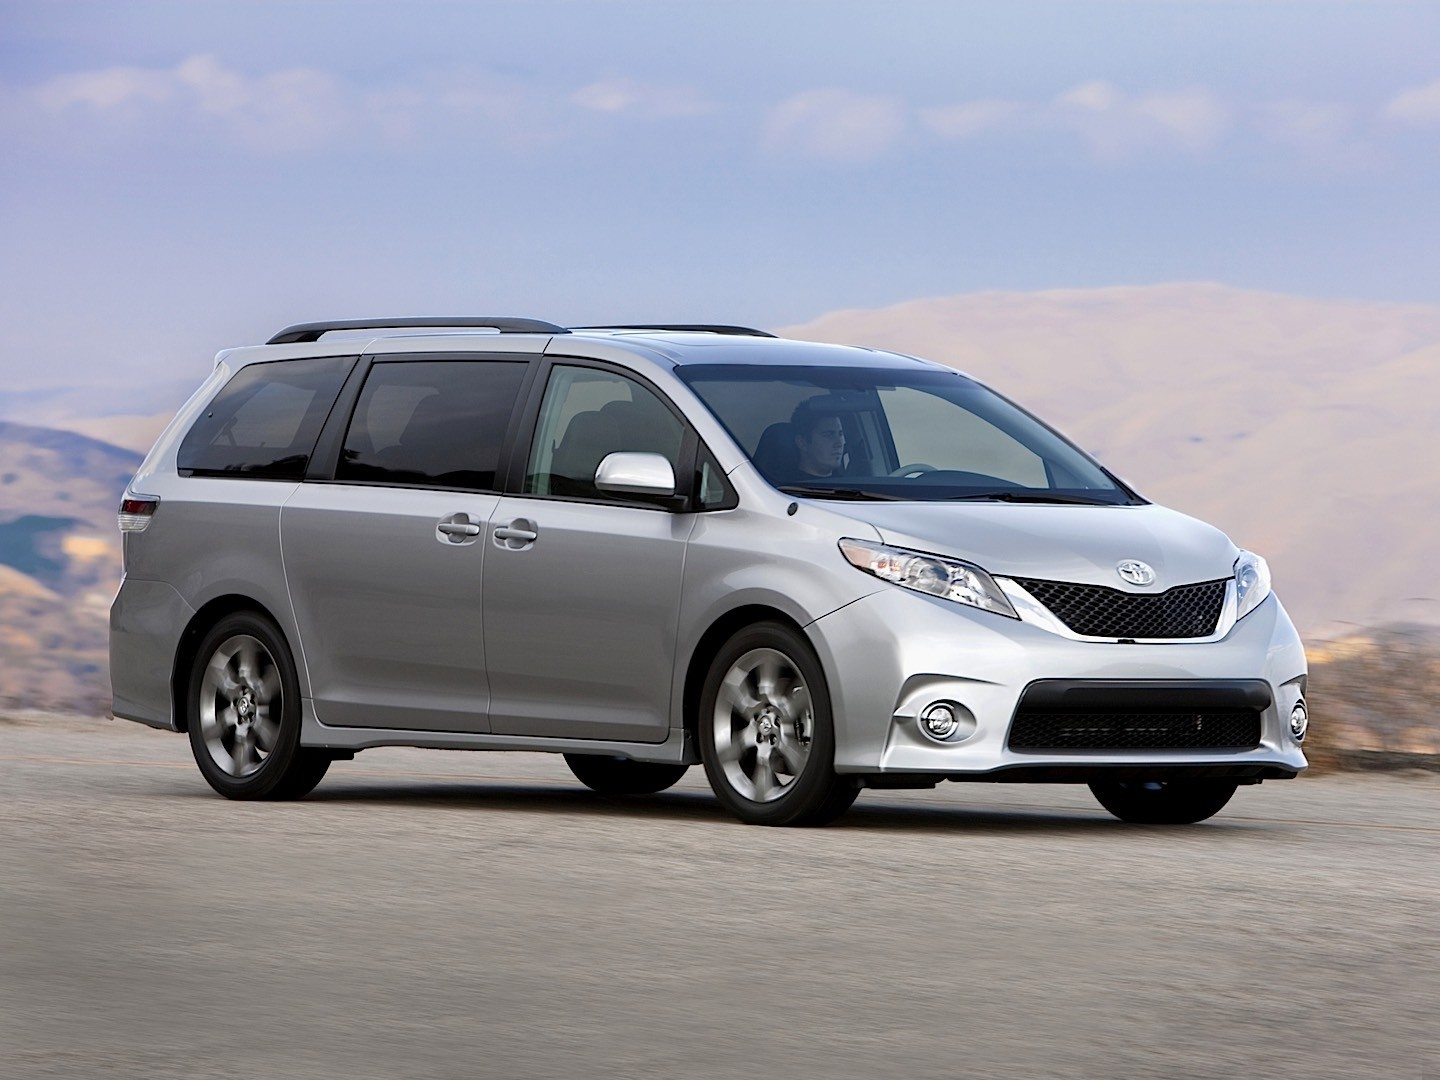 Toyota Sienna 2010 on toyota straight 6 engine